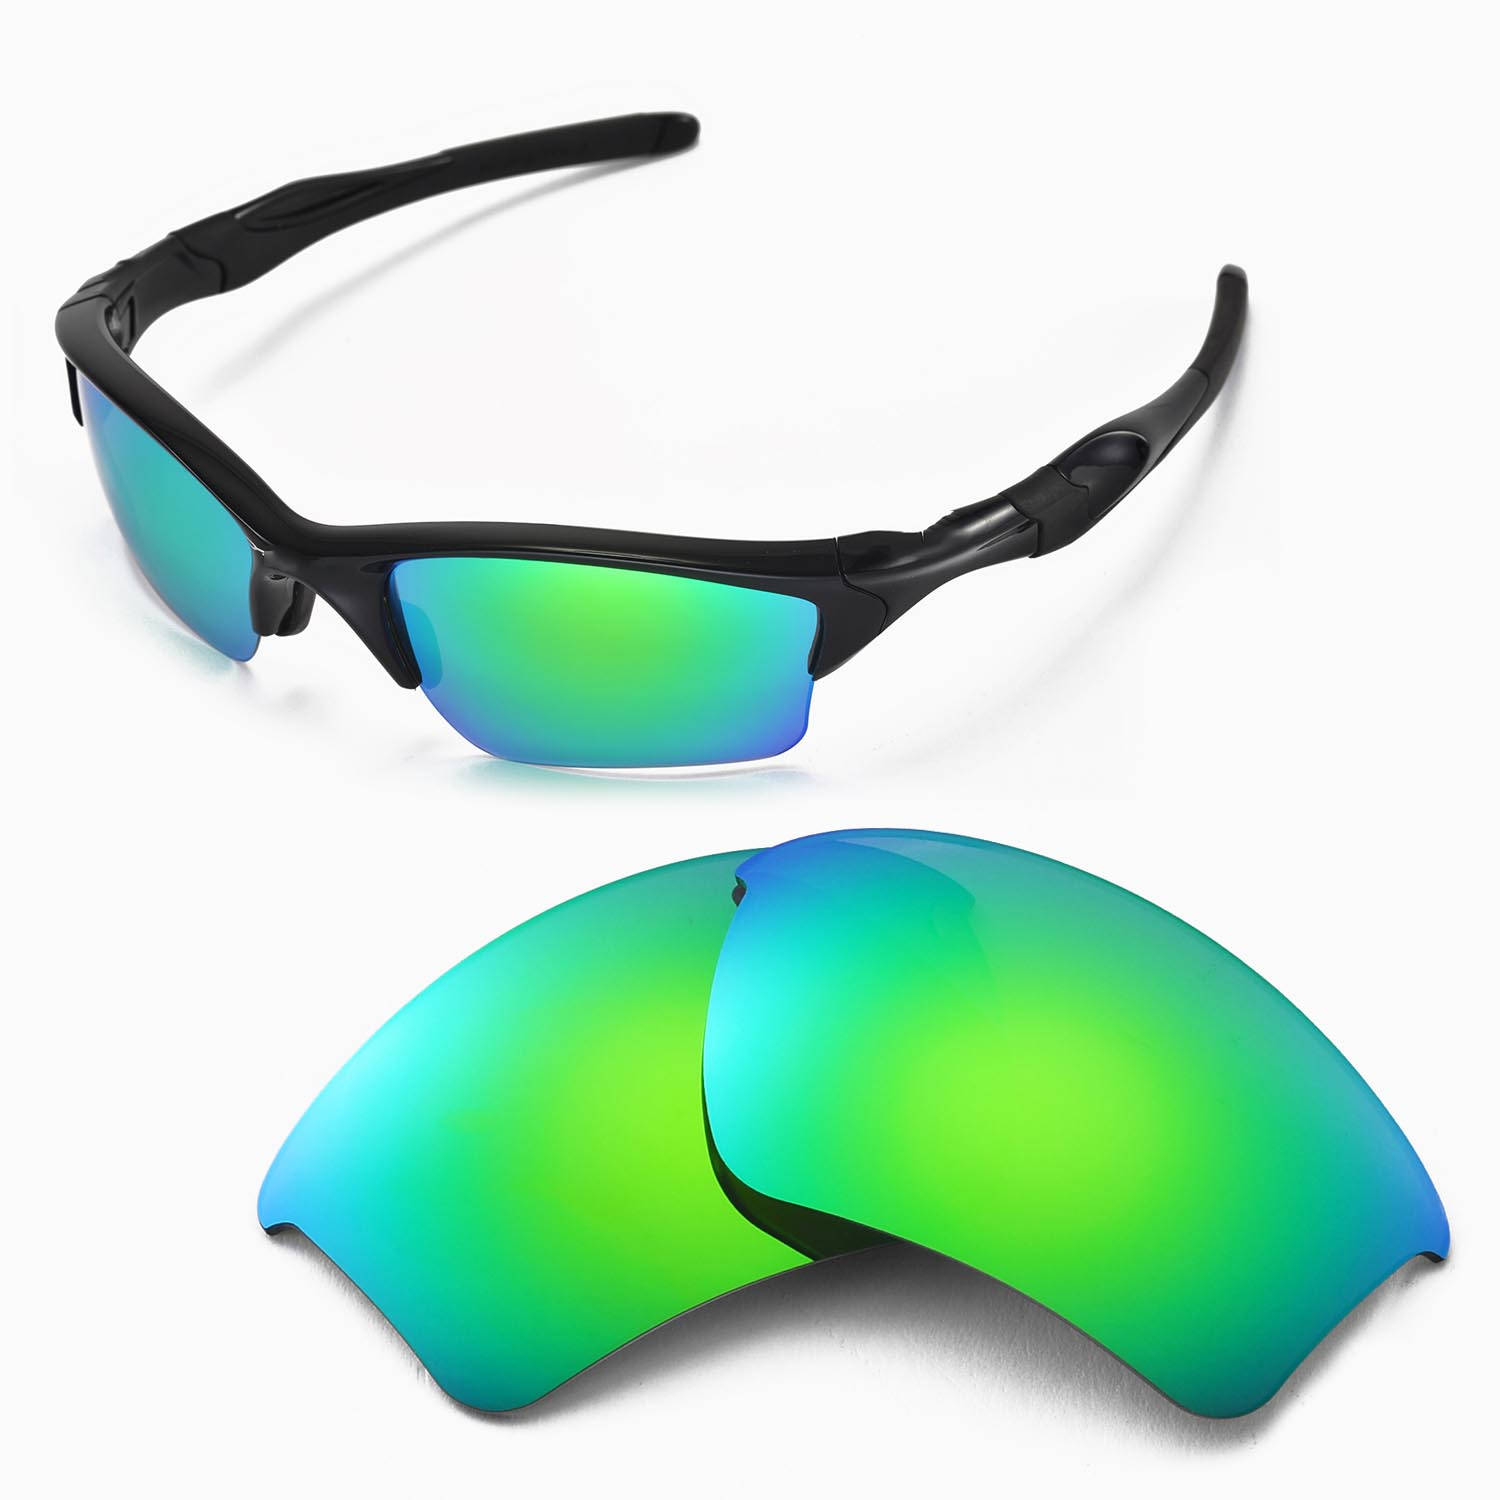 2e2163215f Walleva Polarized Emeraldine Lenses for Oakley Half Jacket 2.0 XL x1   Walleva Microfiber Lens Cleaning Cloth x1. main image